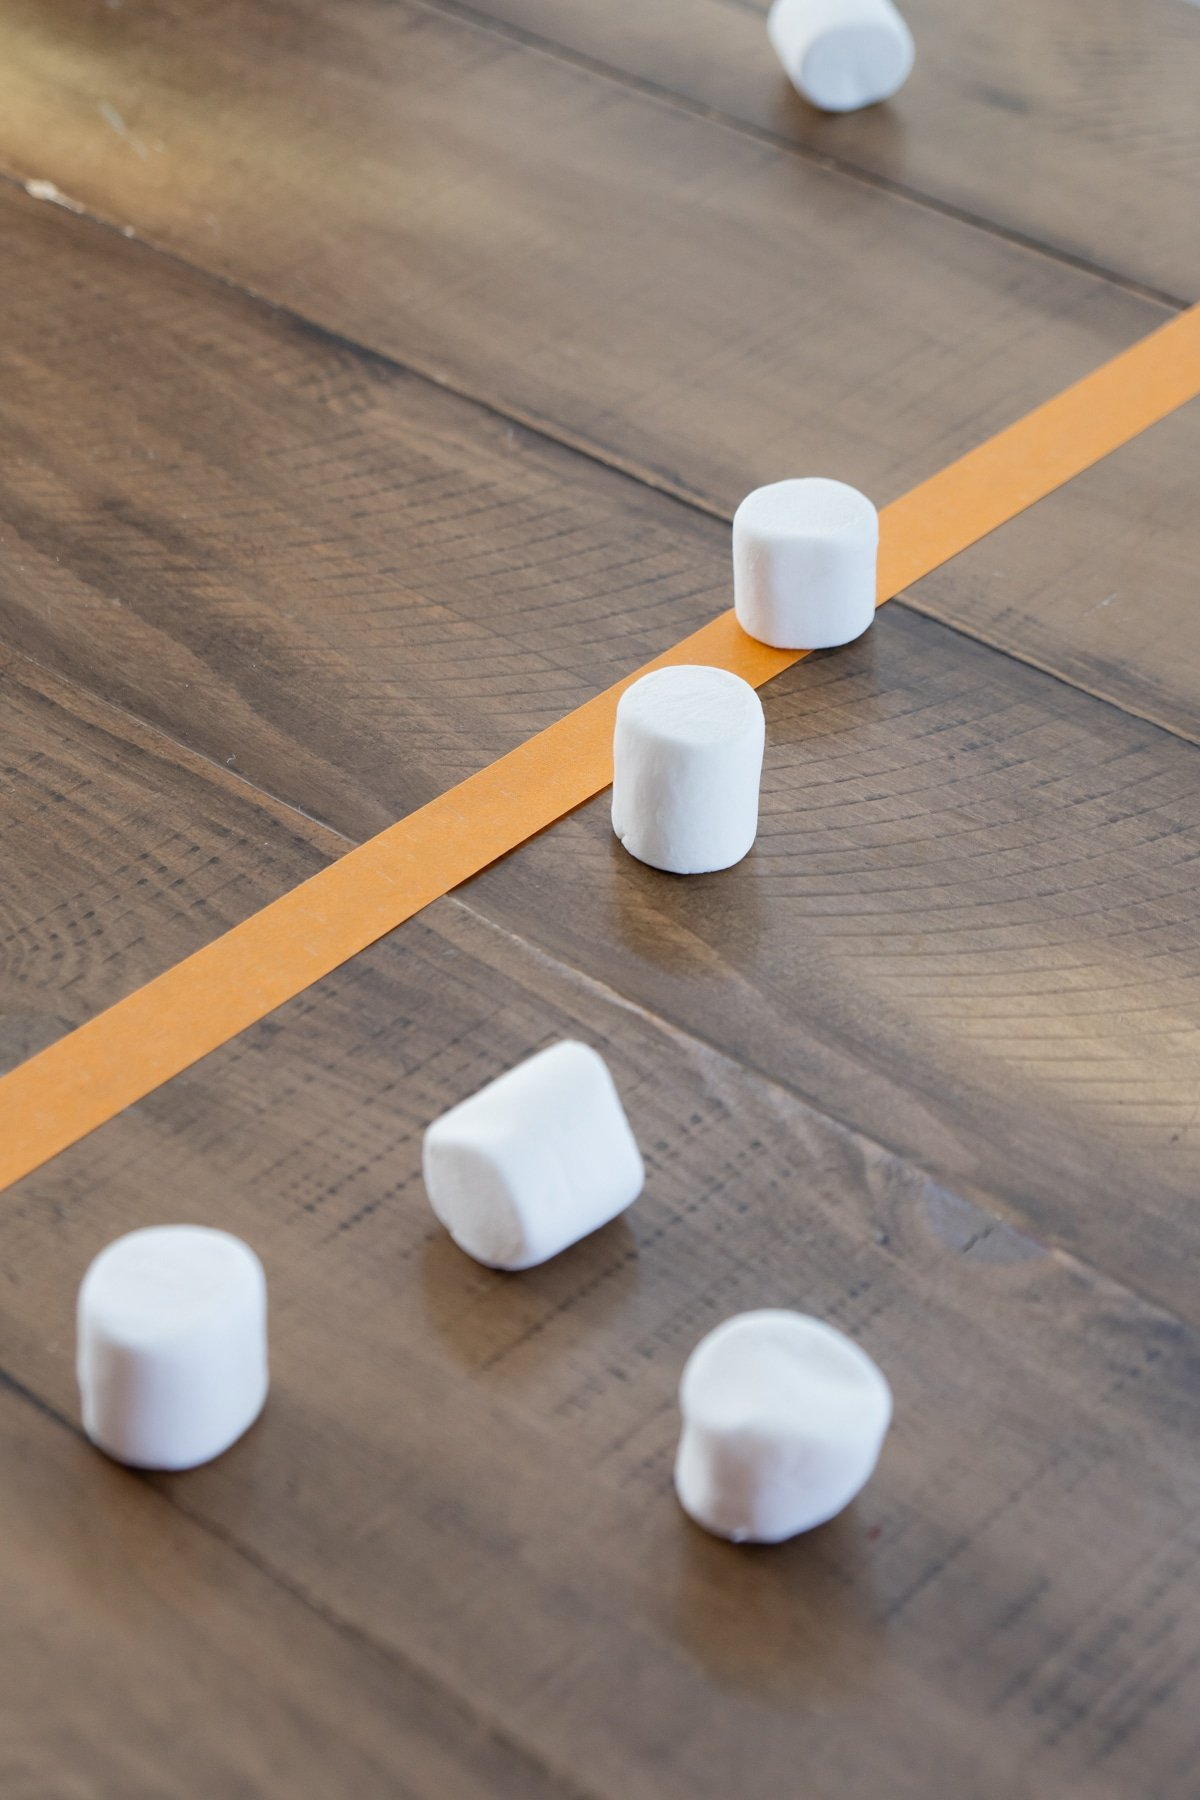 Marshmallows on a table with tape